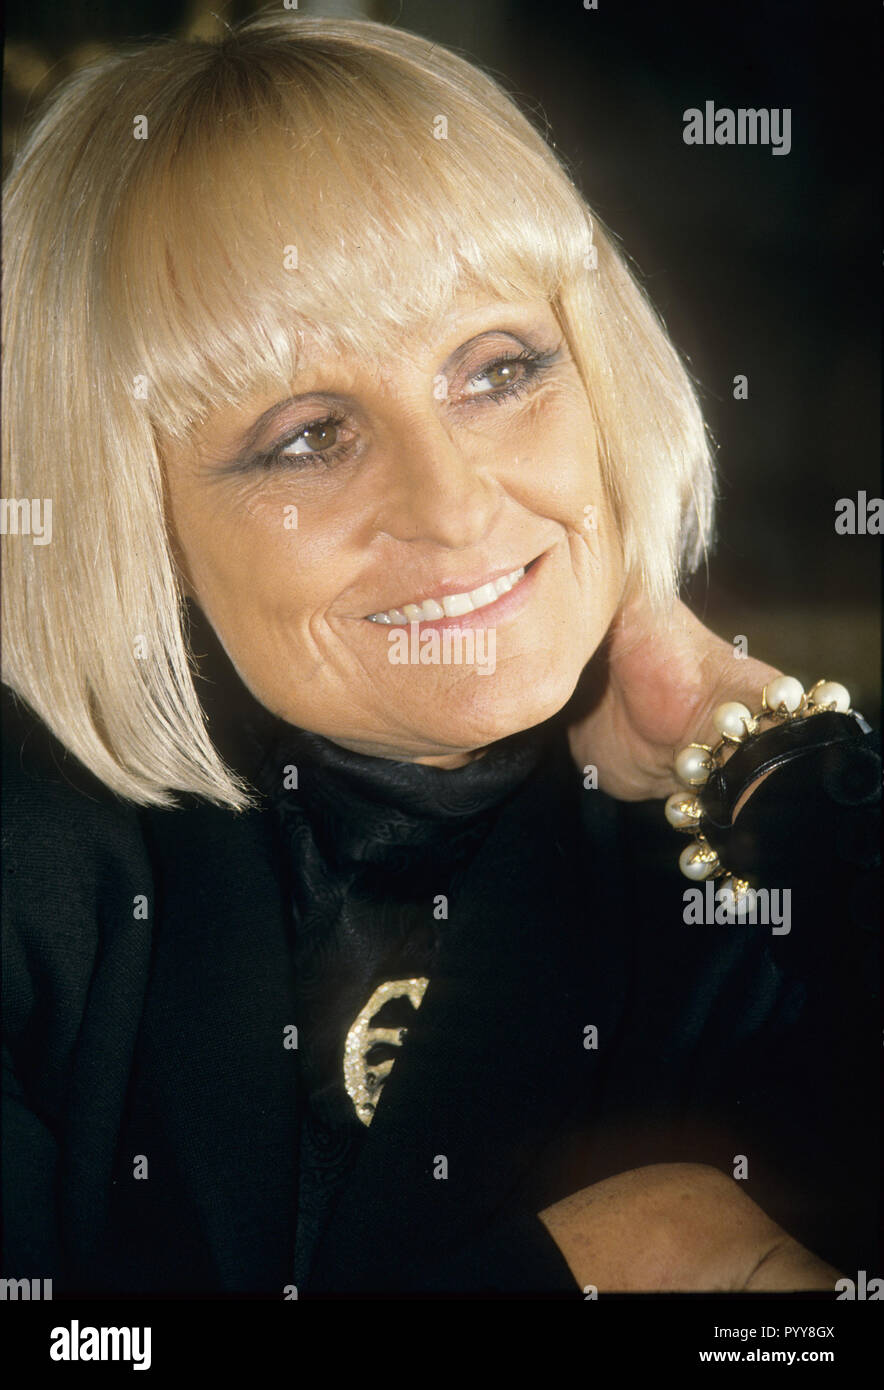 BARBARA HULANICKI Polish fashion designer and founder of Biba, about 1965 - Stock Image